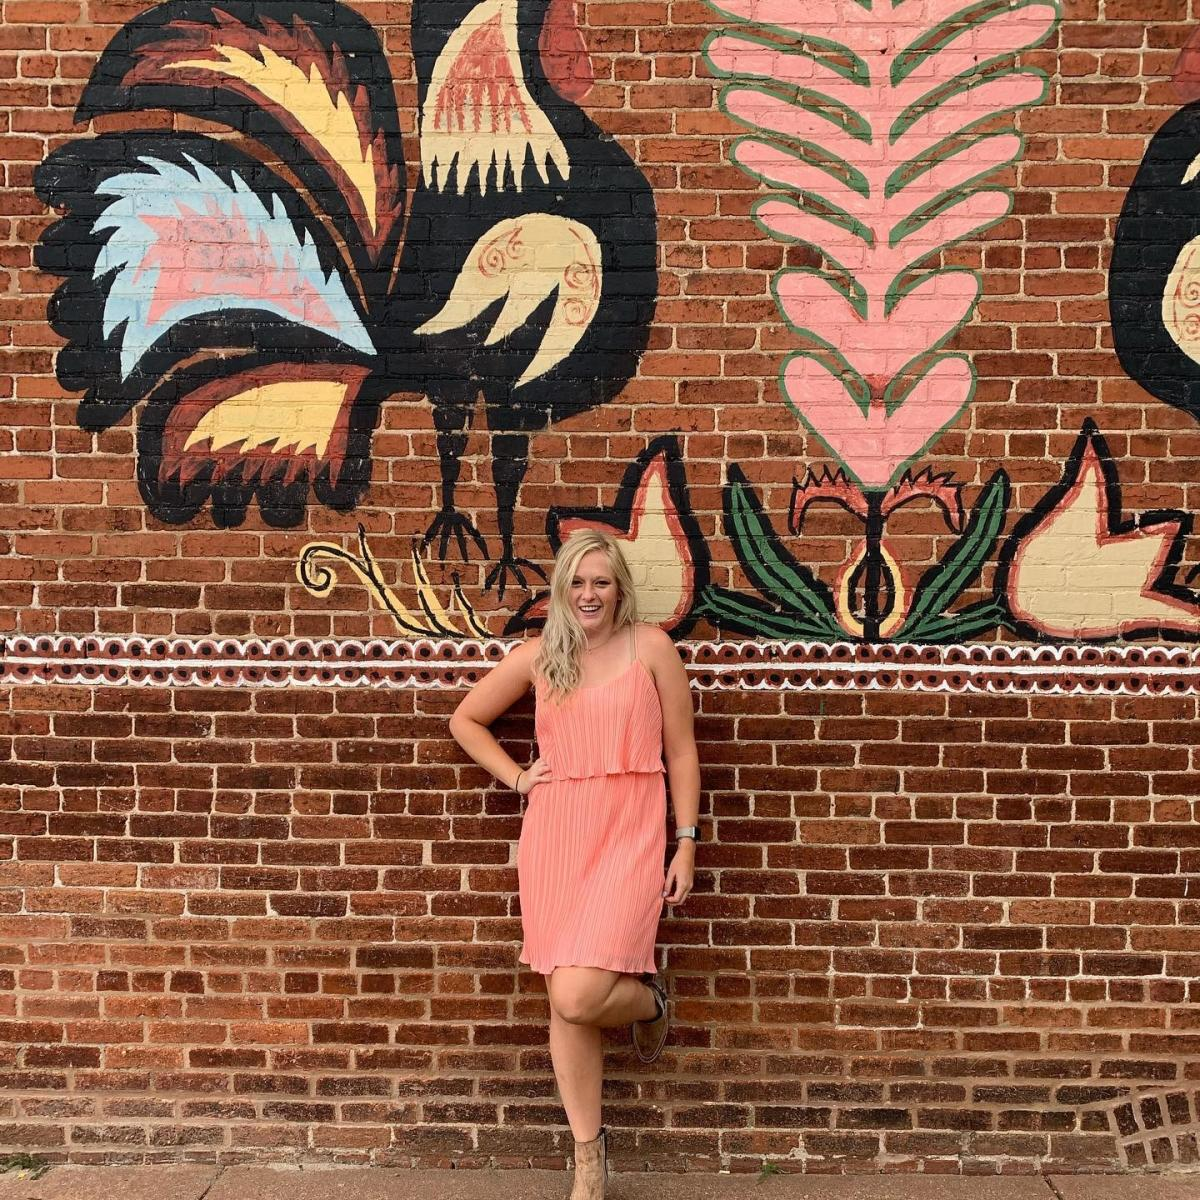 Polish Chicken Mural in Downtown Stevens Point